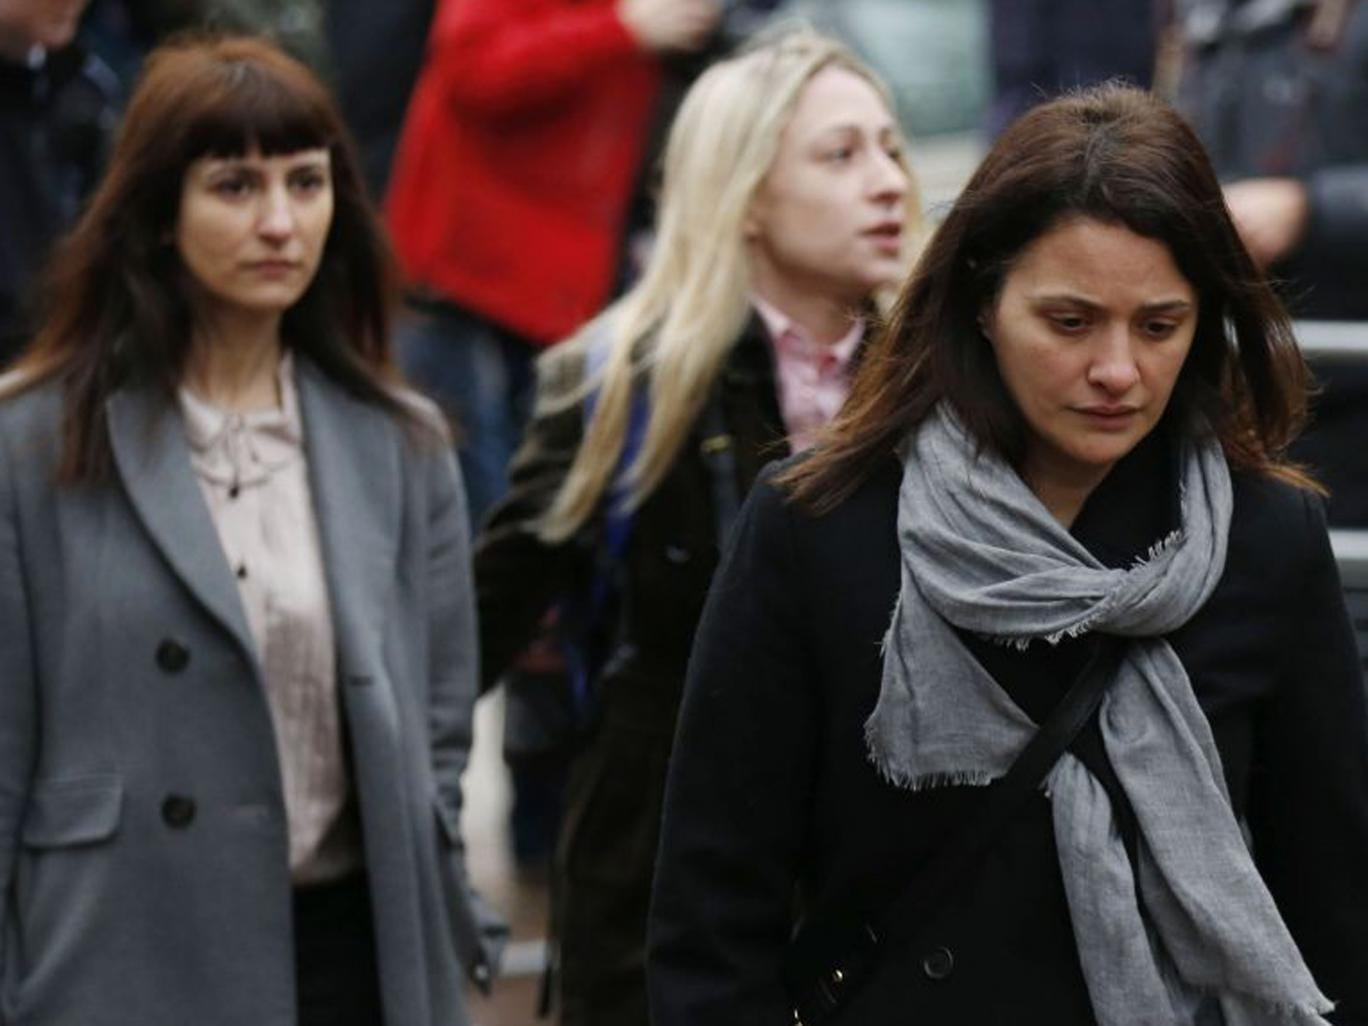 Elisabetta Grillo, foreground, and Francesca Grillo, left, are accused of abusing their positions by using credit cards loaned to them by Ms Lawson and her former husband Charles Saatchi